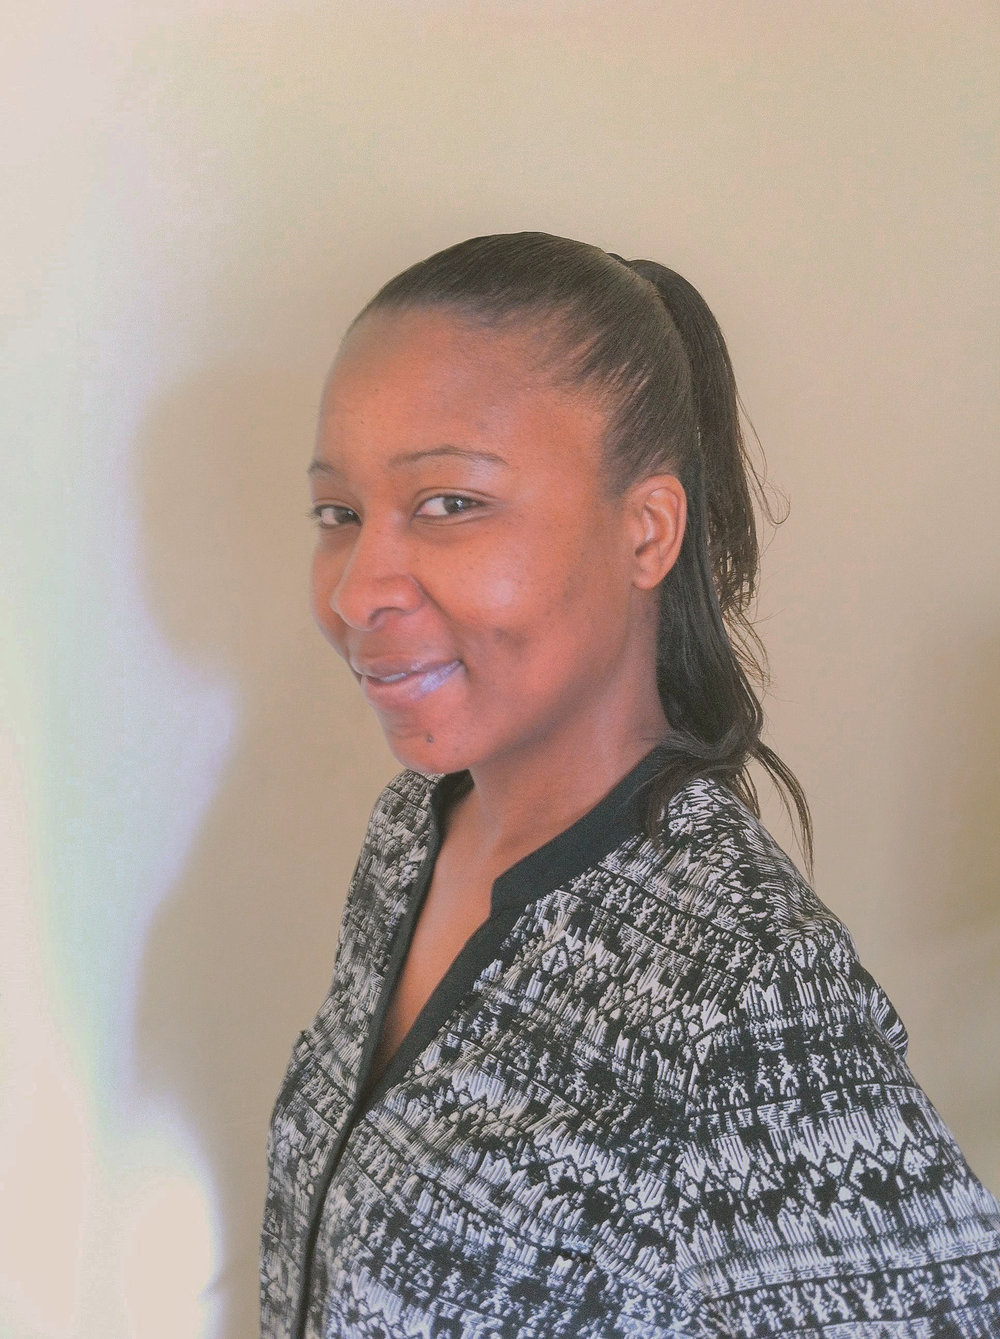 Milcah Dhoro DPhil, MPhil - Current position: Research Scientist (Pharmacogenetics) and Senior Lecturer, Department of Clinical Pharmacology, College of Health Sciences, University of ZimbabweEmail